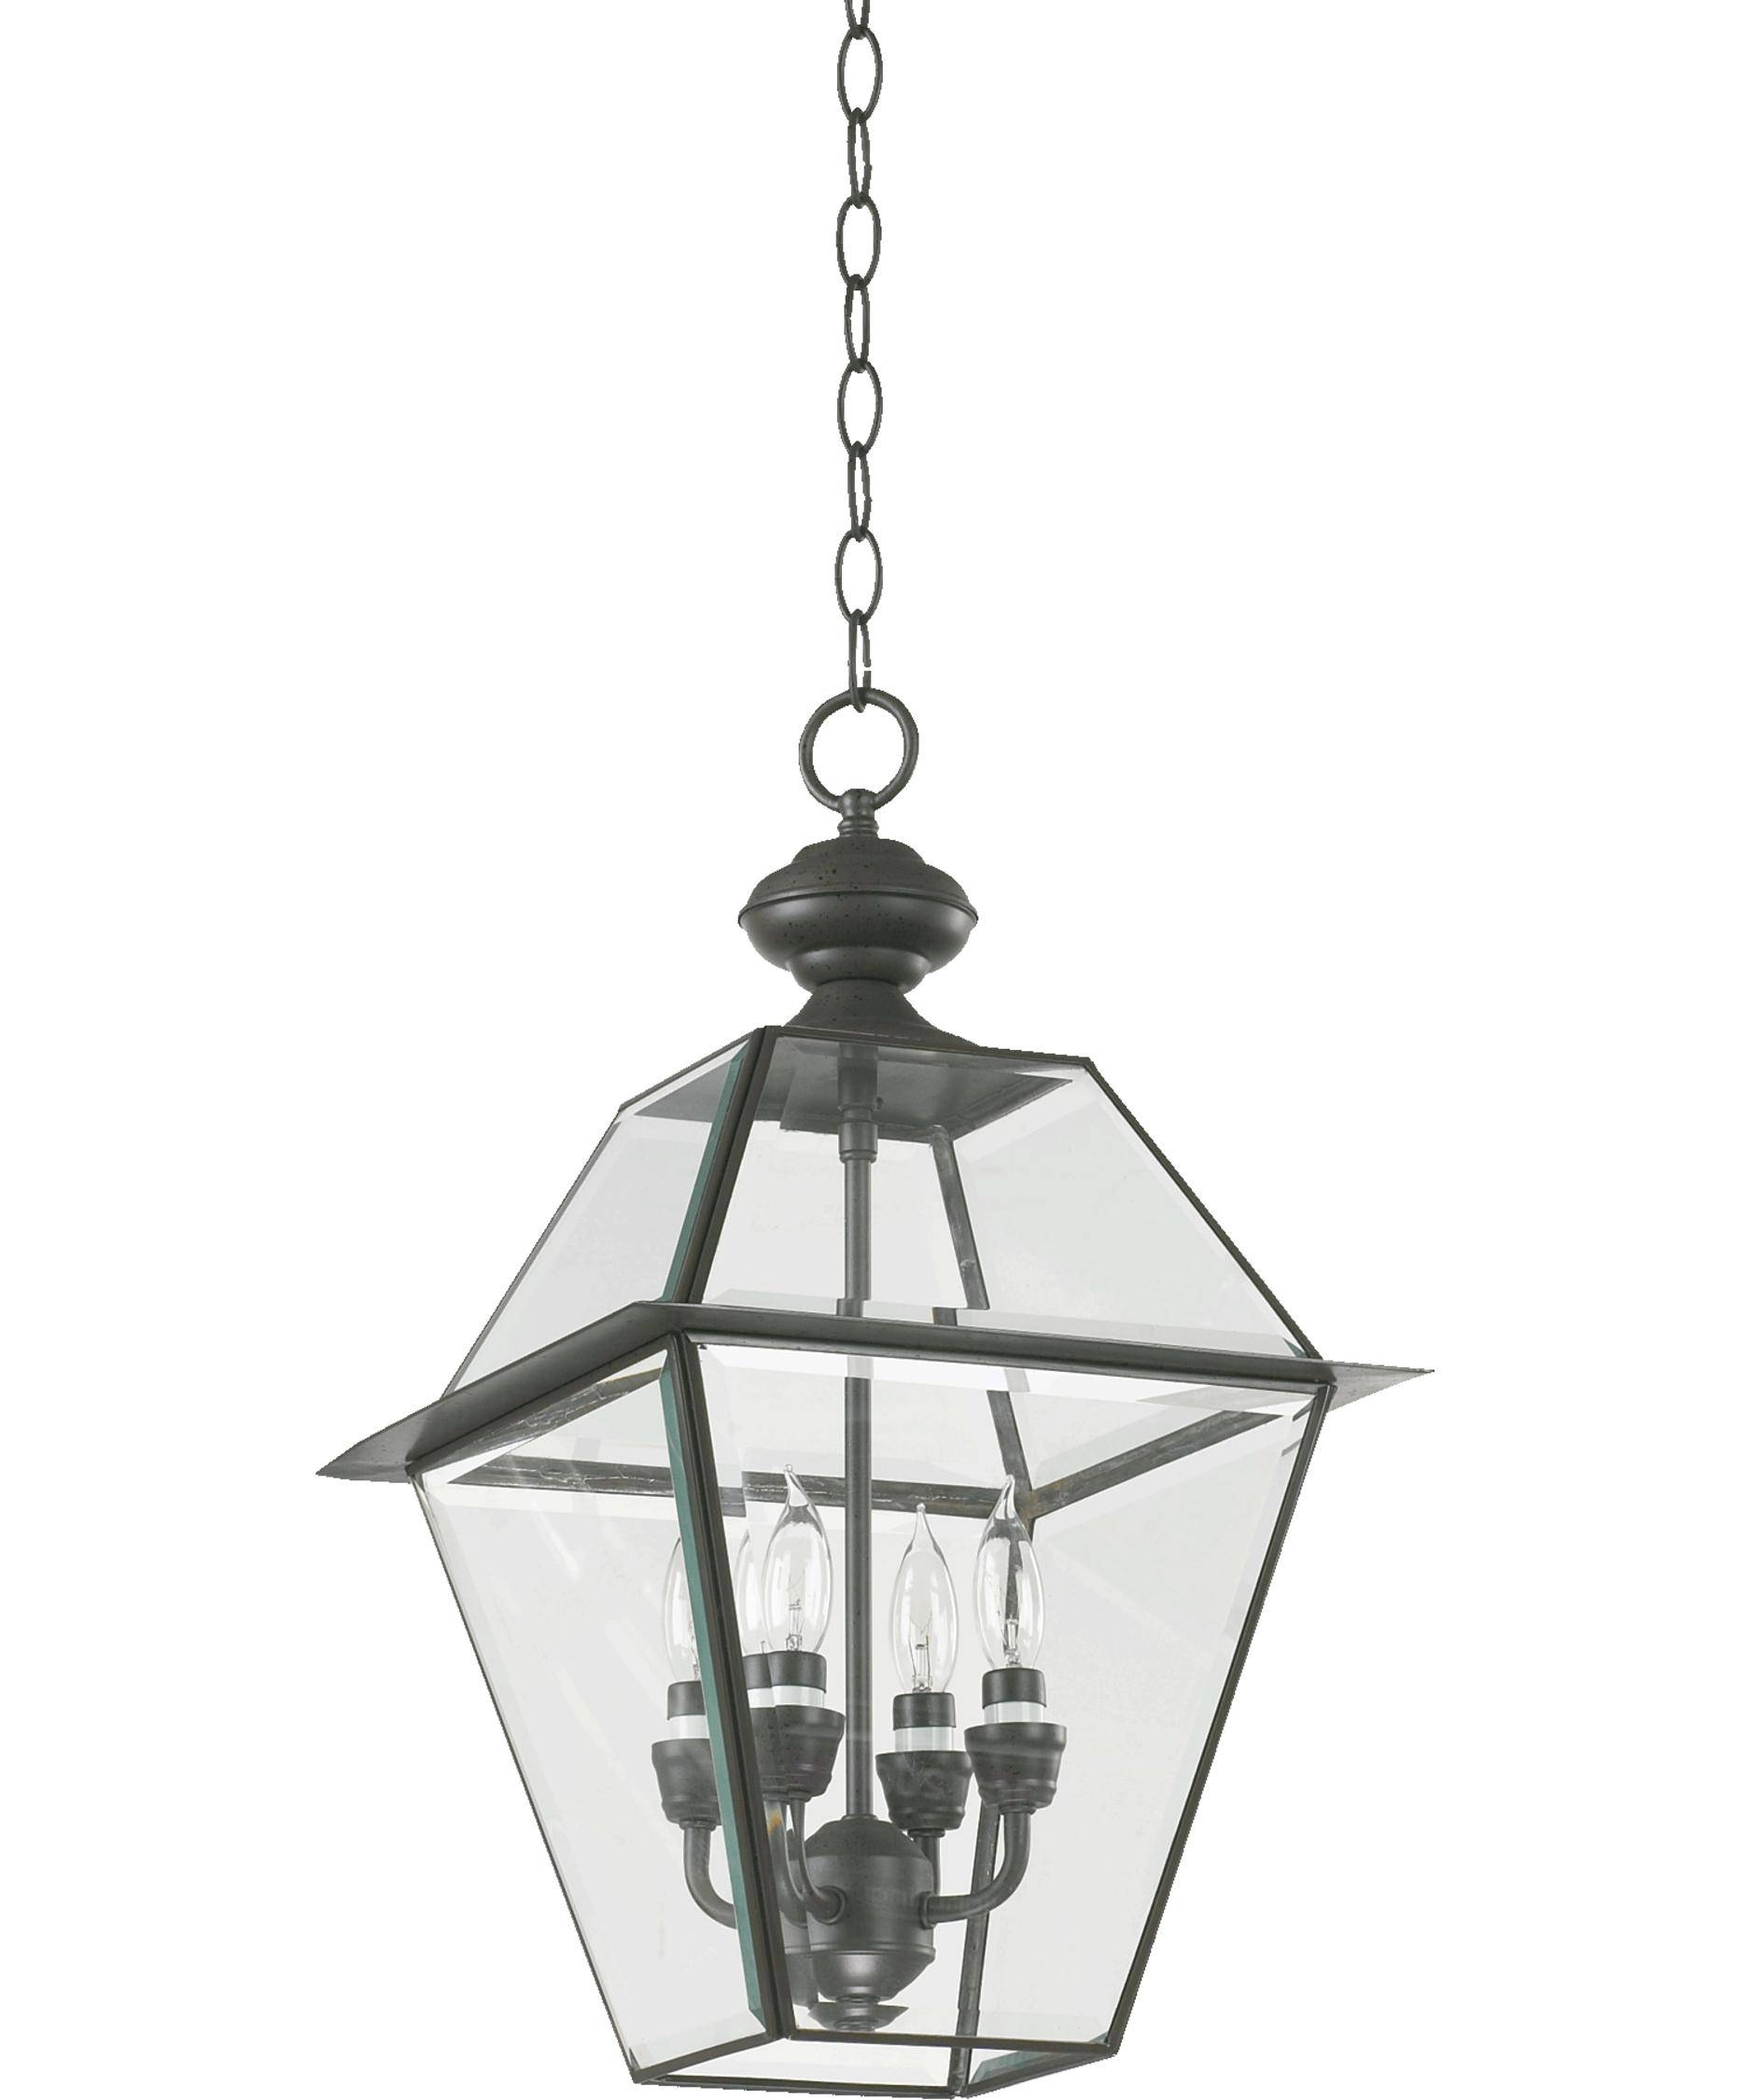 Quorum International 728 4 Duvall 12 Inch Wide 4 Light Outdoor Pertaining To Quorum Pendant Lights (View 8 of 15)